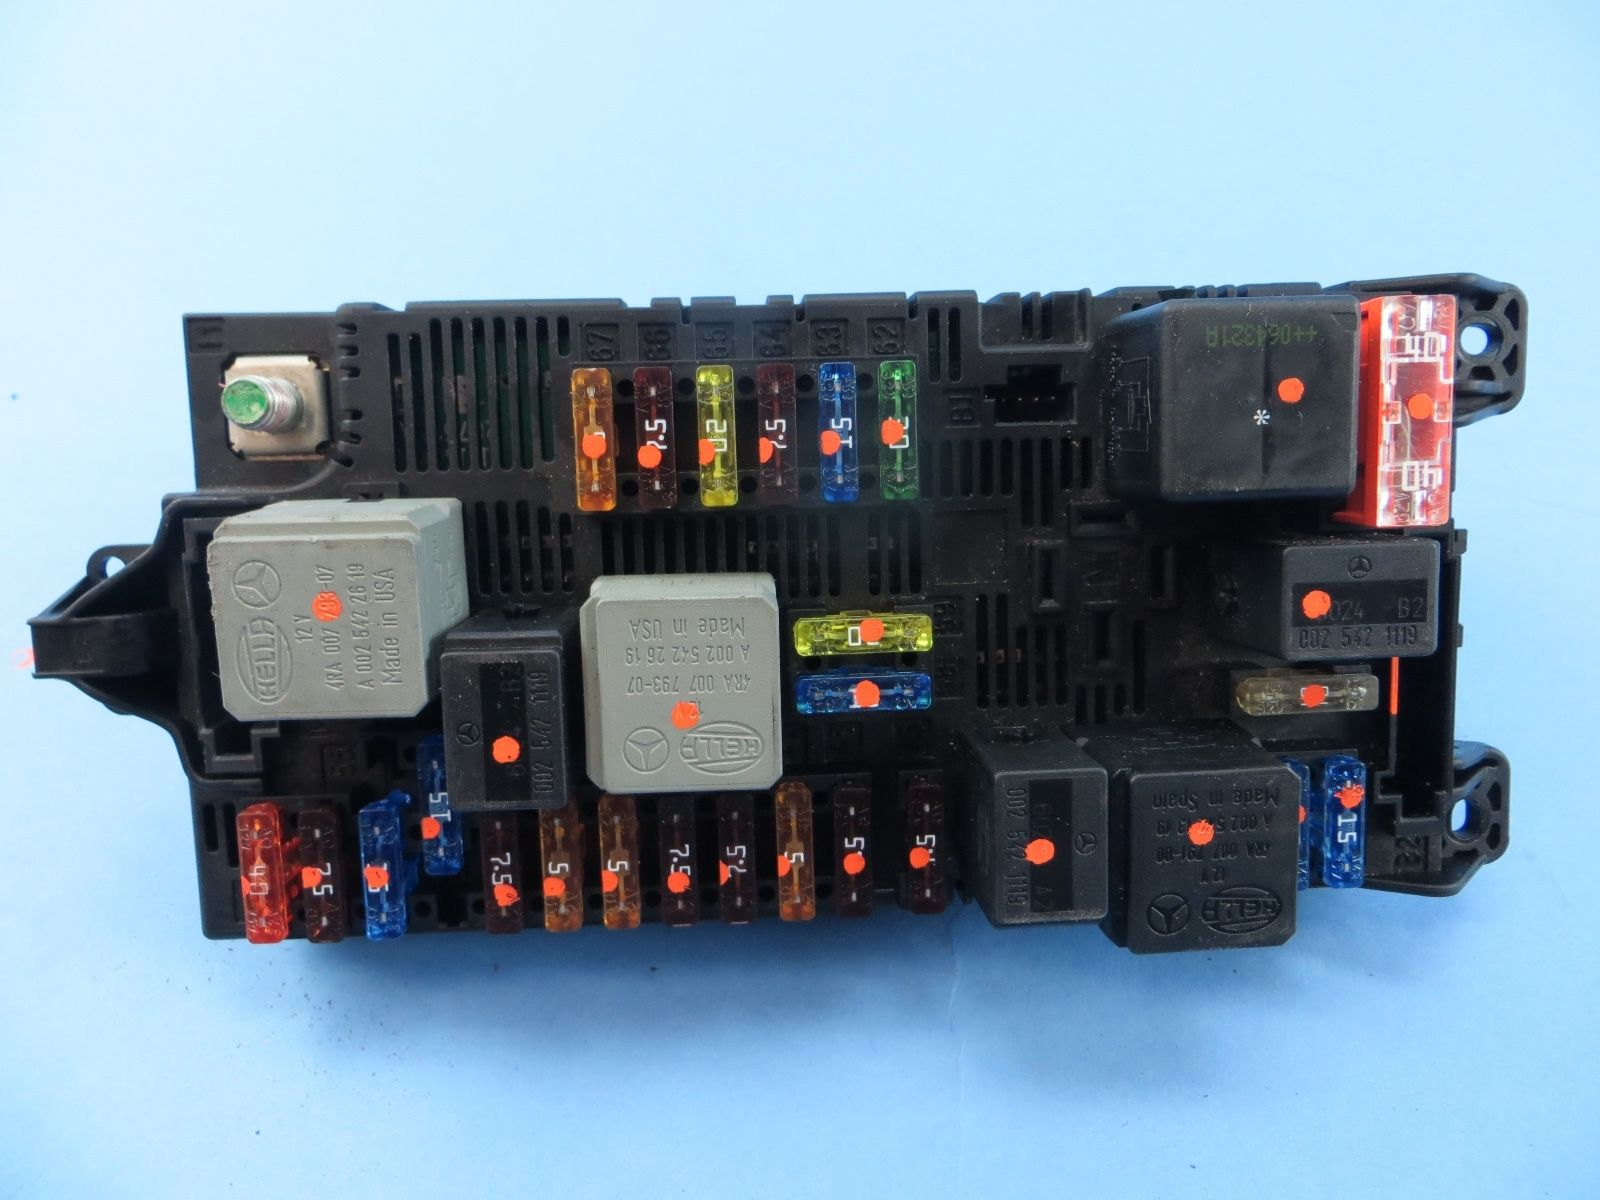 a38e1804 62f3 4299 b085 fd96ff7256fd 2007 cls550 fuse diagram 2007 cls550 fuse box \u2022 indy500 co mercedes cls550 fuse box diagram at bayanpartner.co